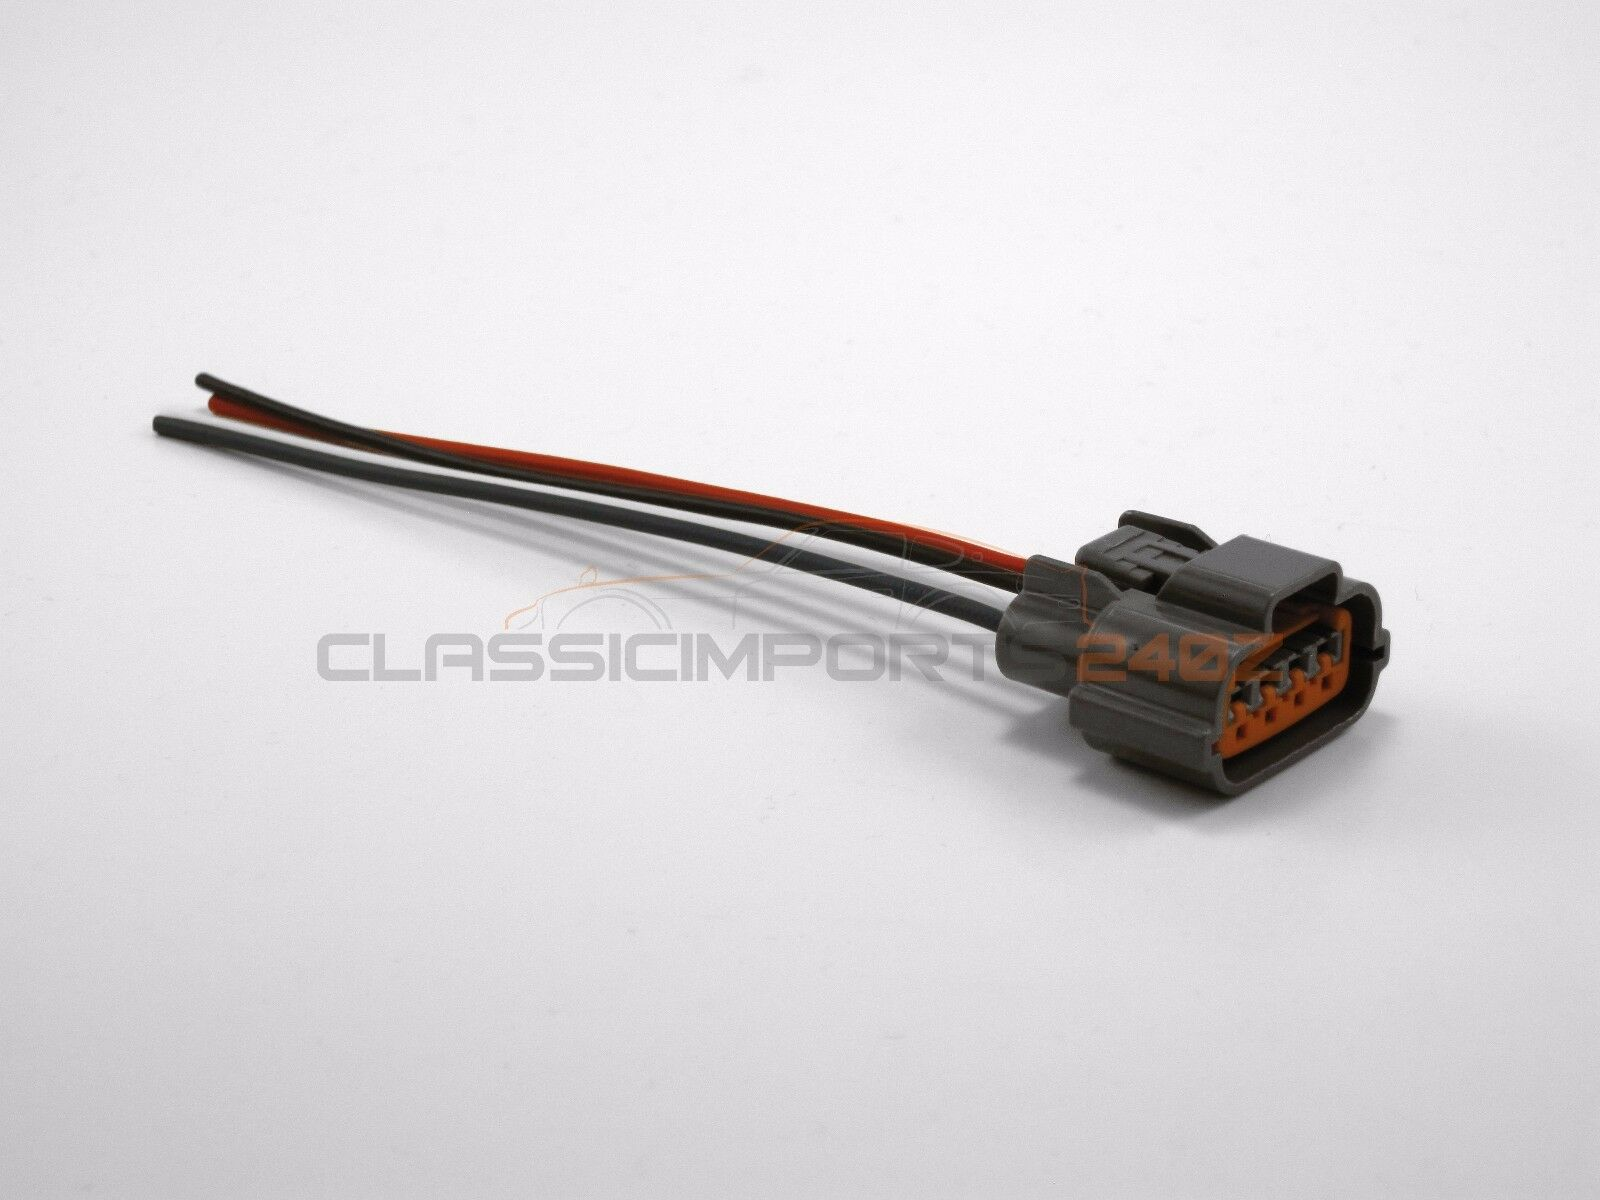 maxxima 3 pin wiring harness wiring library alternator harness connector plug for nissan maxima murano infiniti i30 i35